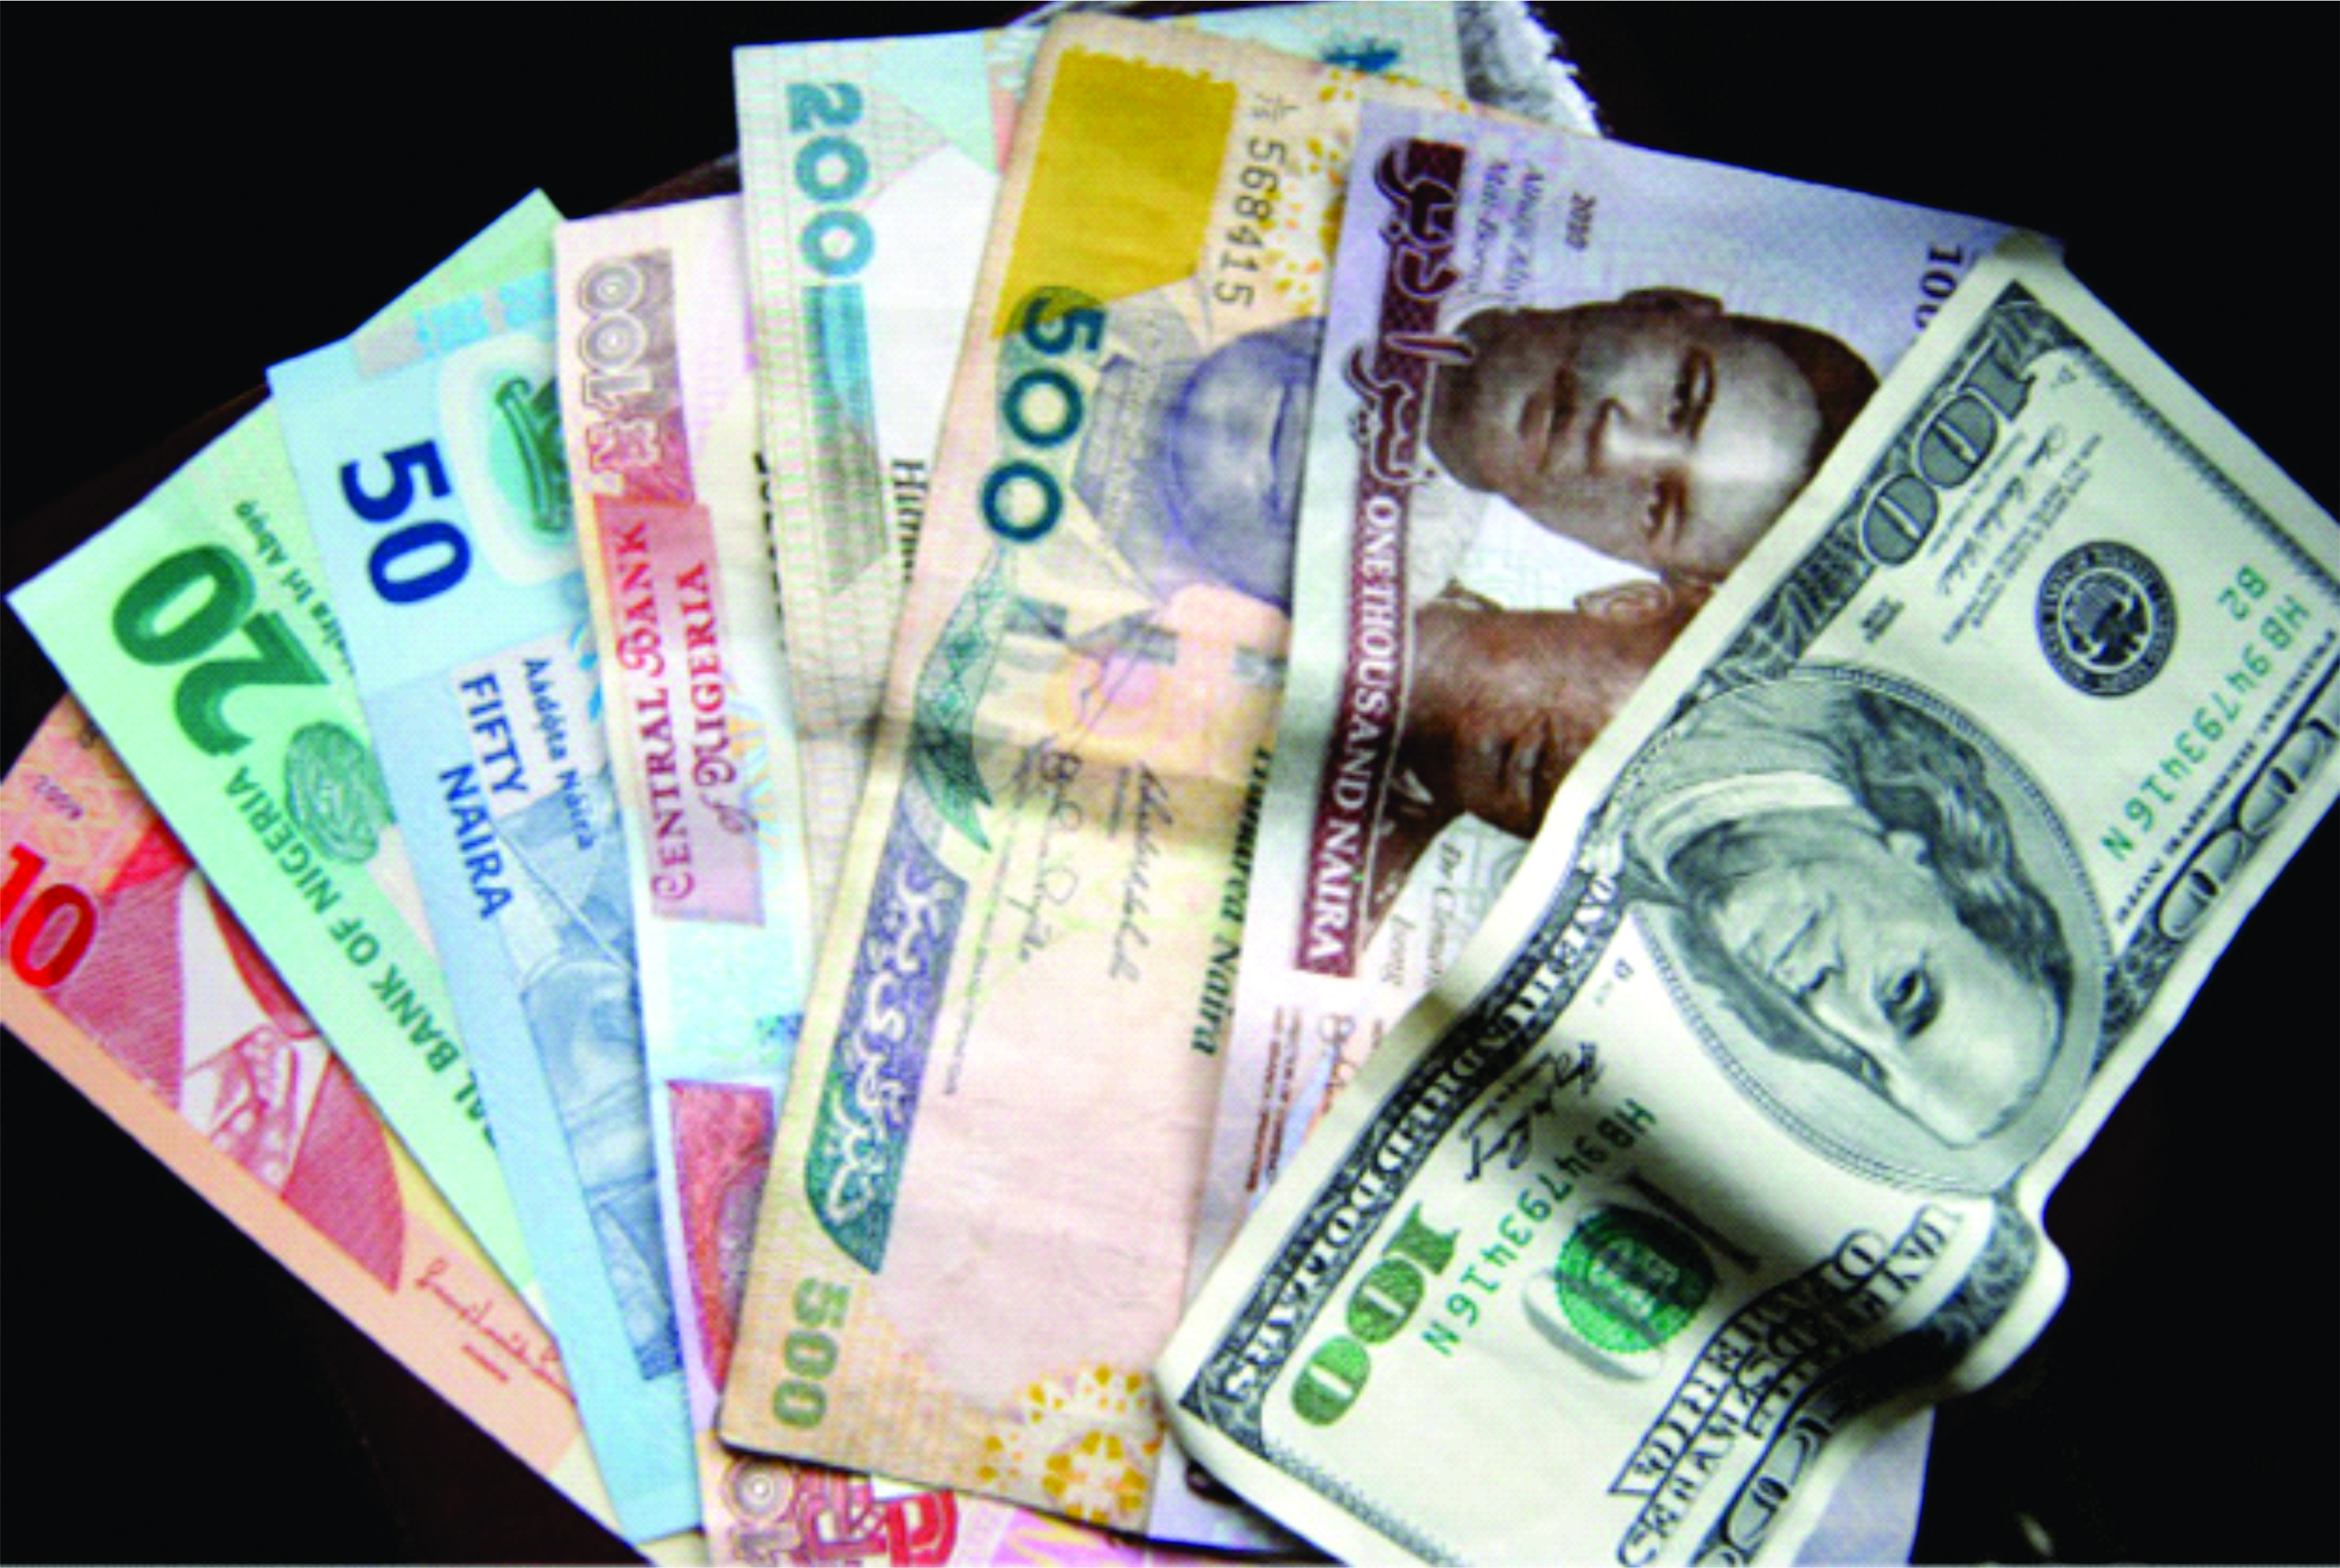 Share This On Whats The Nigerian Naira